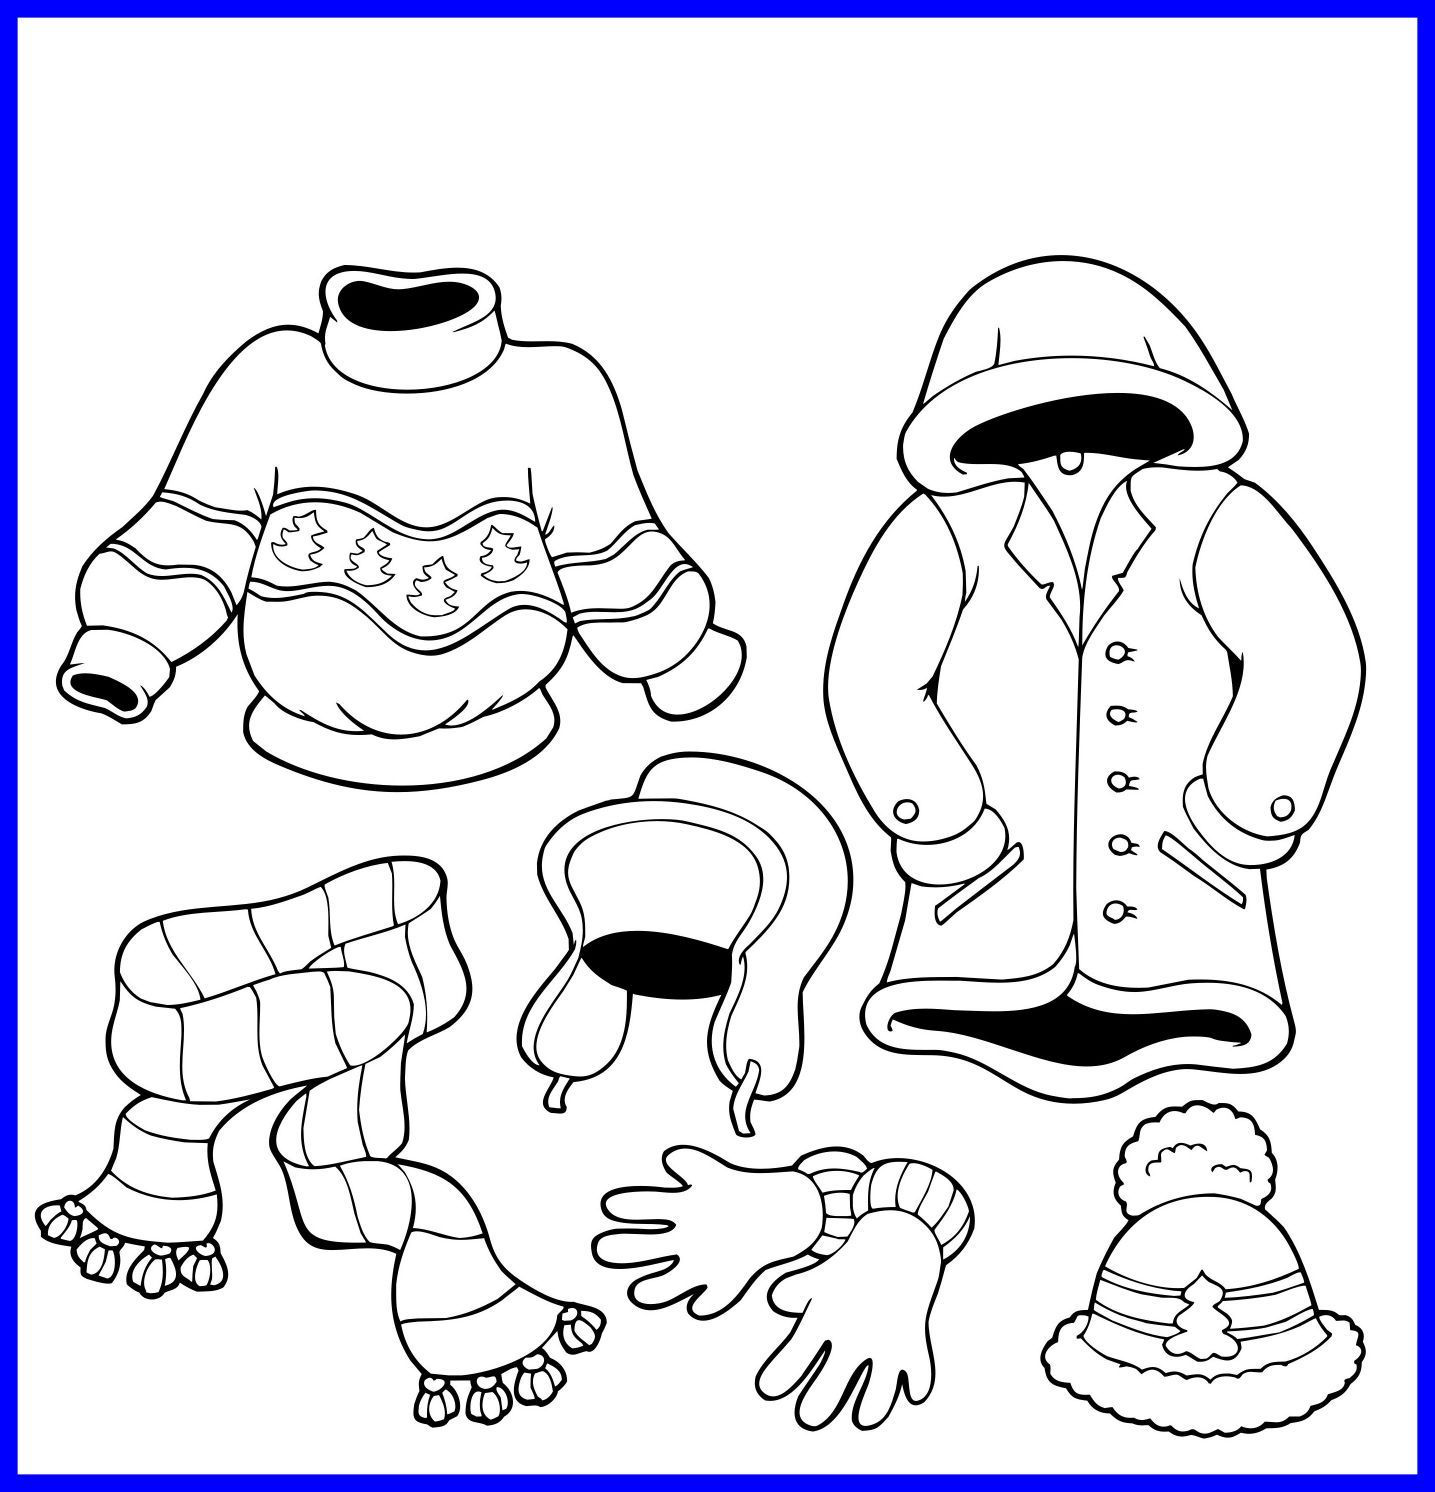 1435x1492 Shocking Secrets Winter Animals Coloring Pages Image